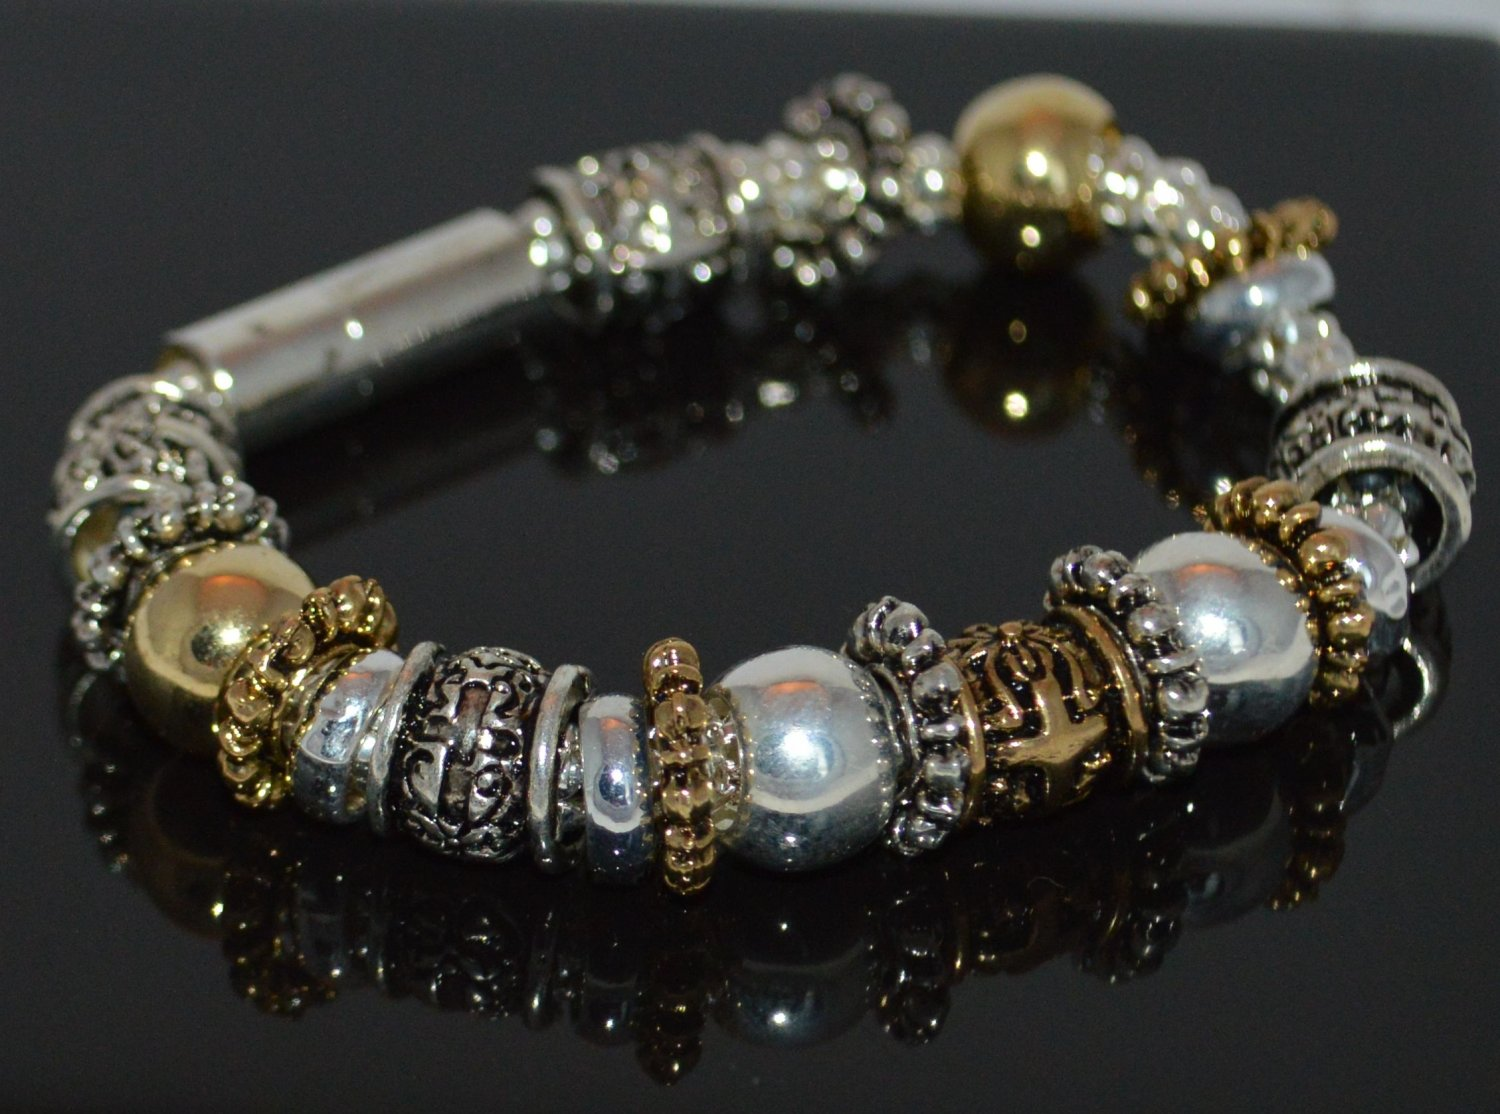 Gold and Silver Tone Metal Beads on Serpentine chain Magnetic Bracelet